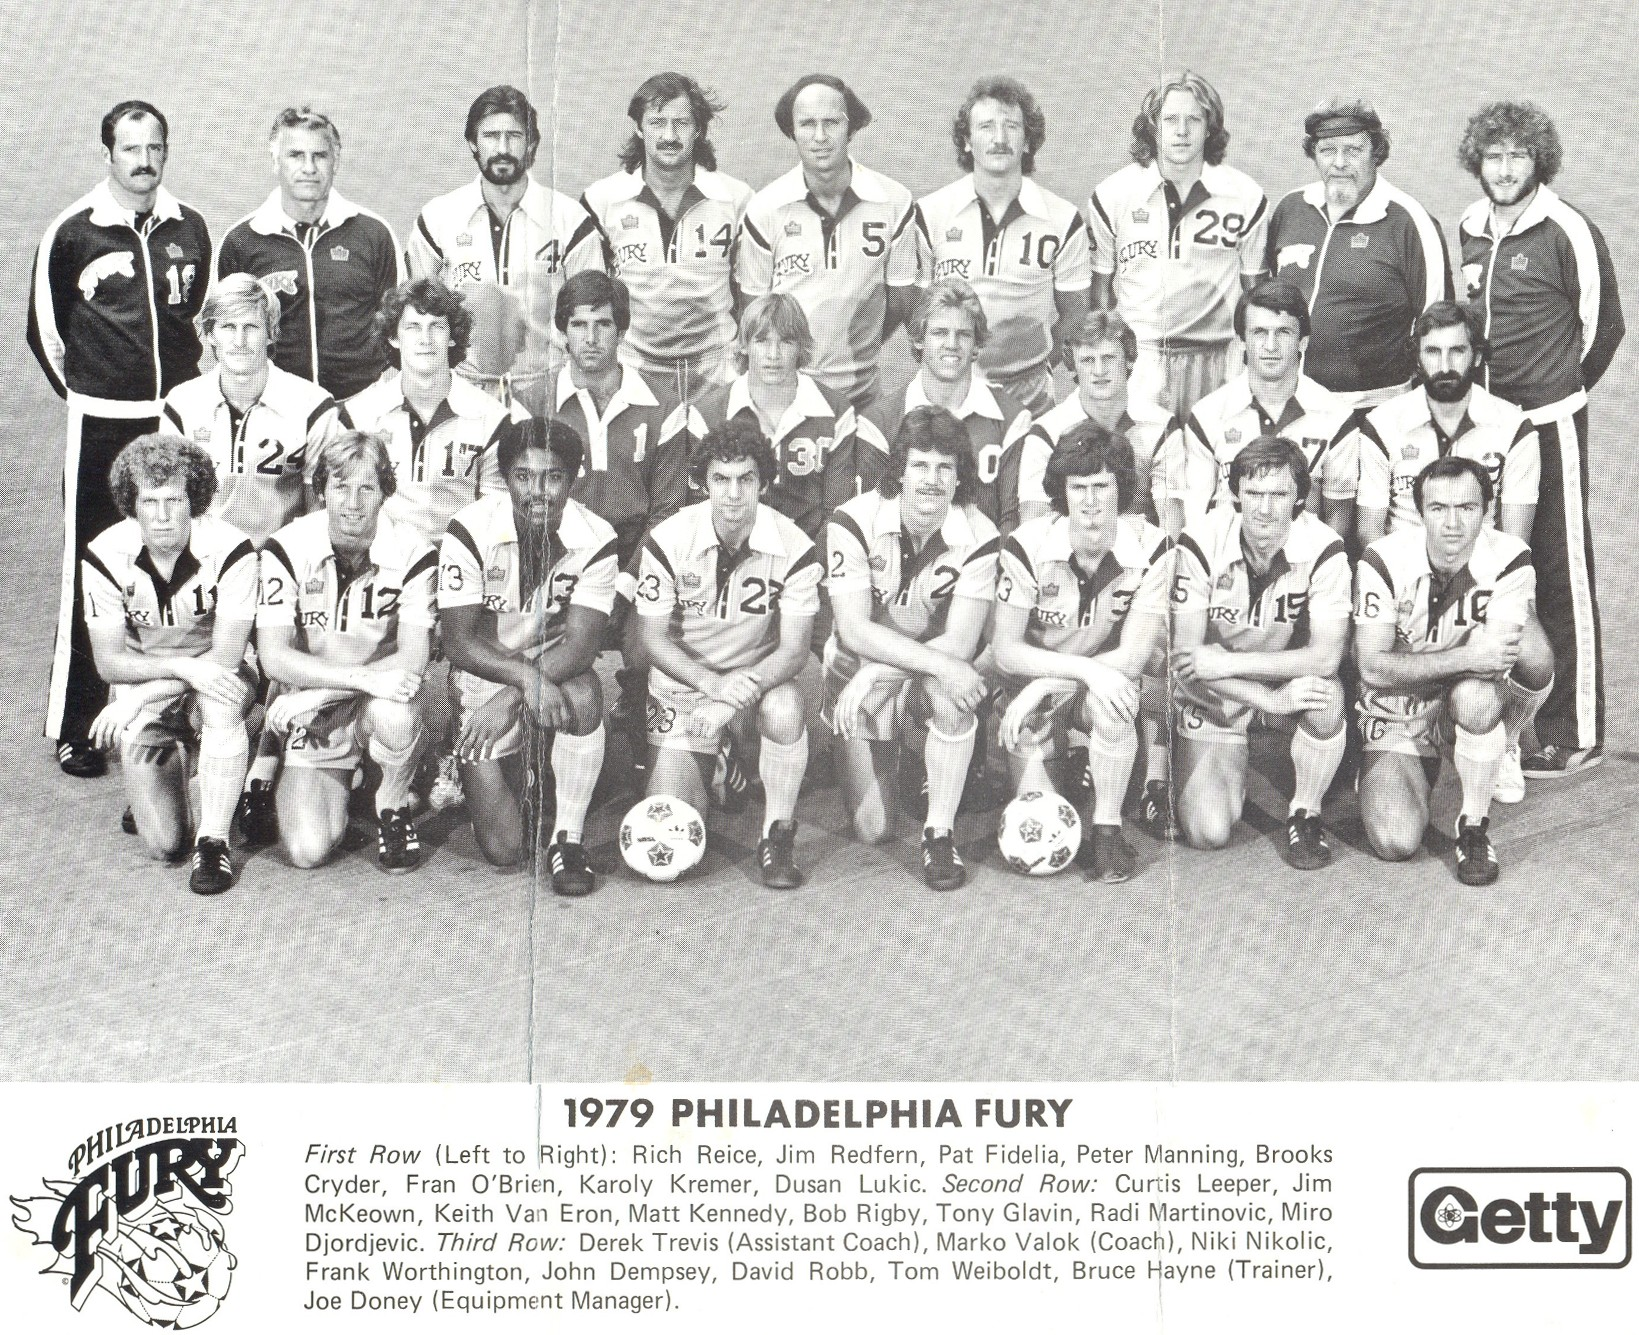 Fury 79 Home Team 2.jpg